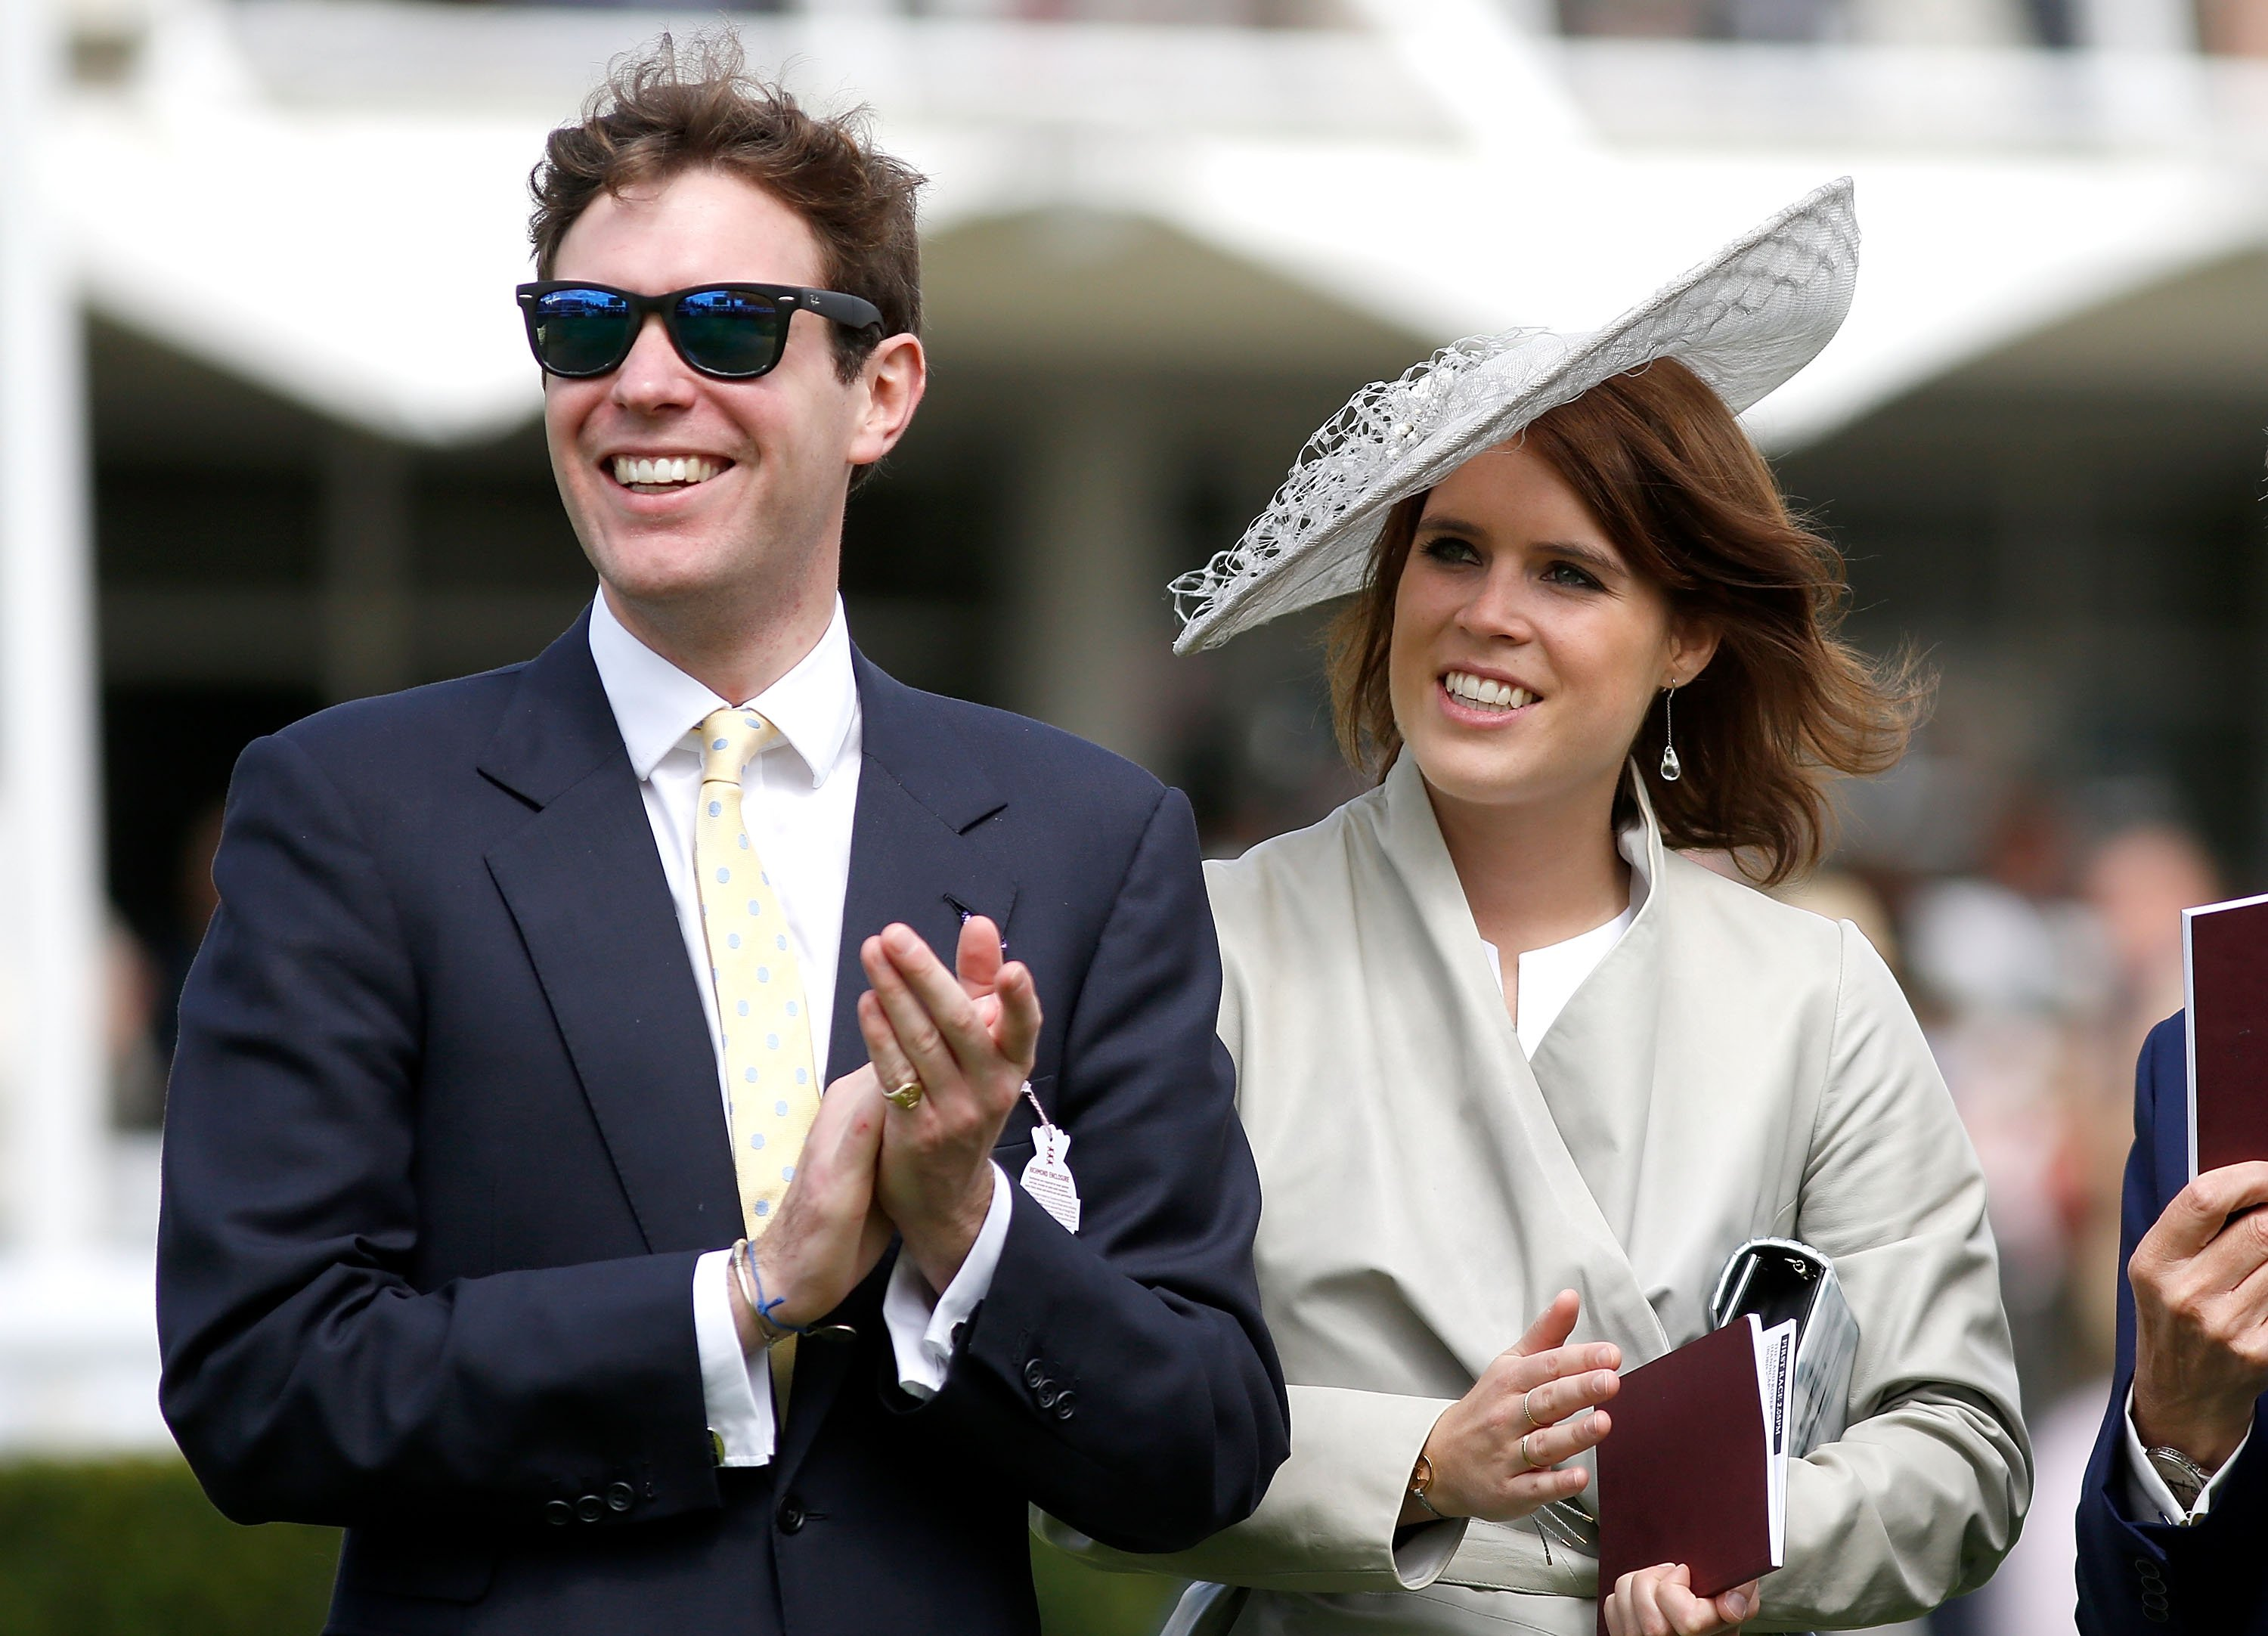 Princess Eugenie pictured attending at the Qatar Goodwood Festival at Goodwood Racecourse, 2015, England. | Photo: Getty Images